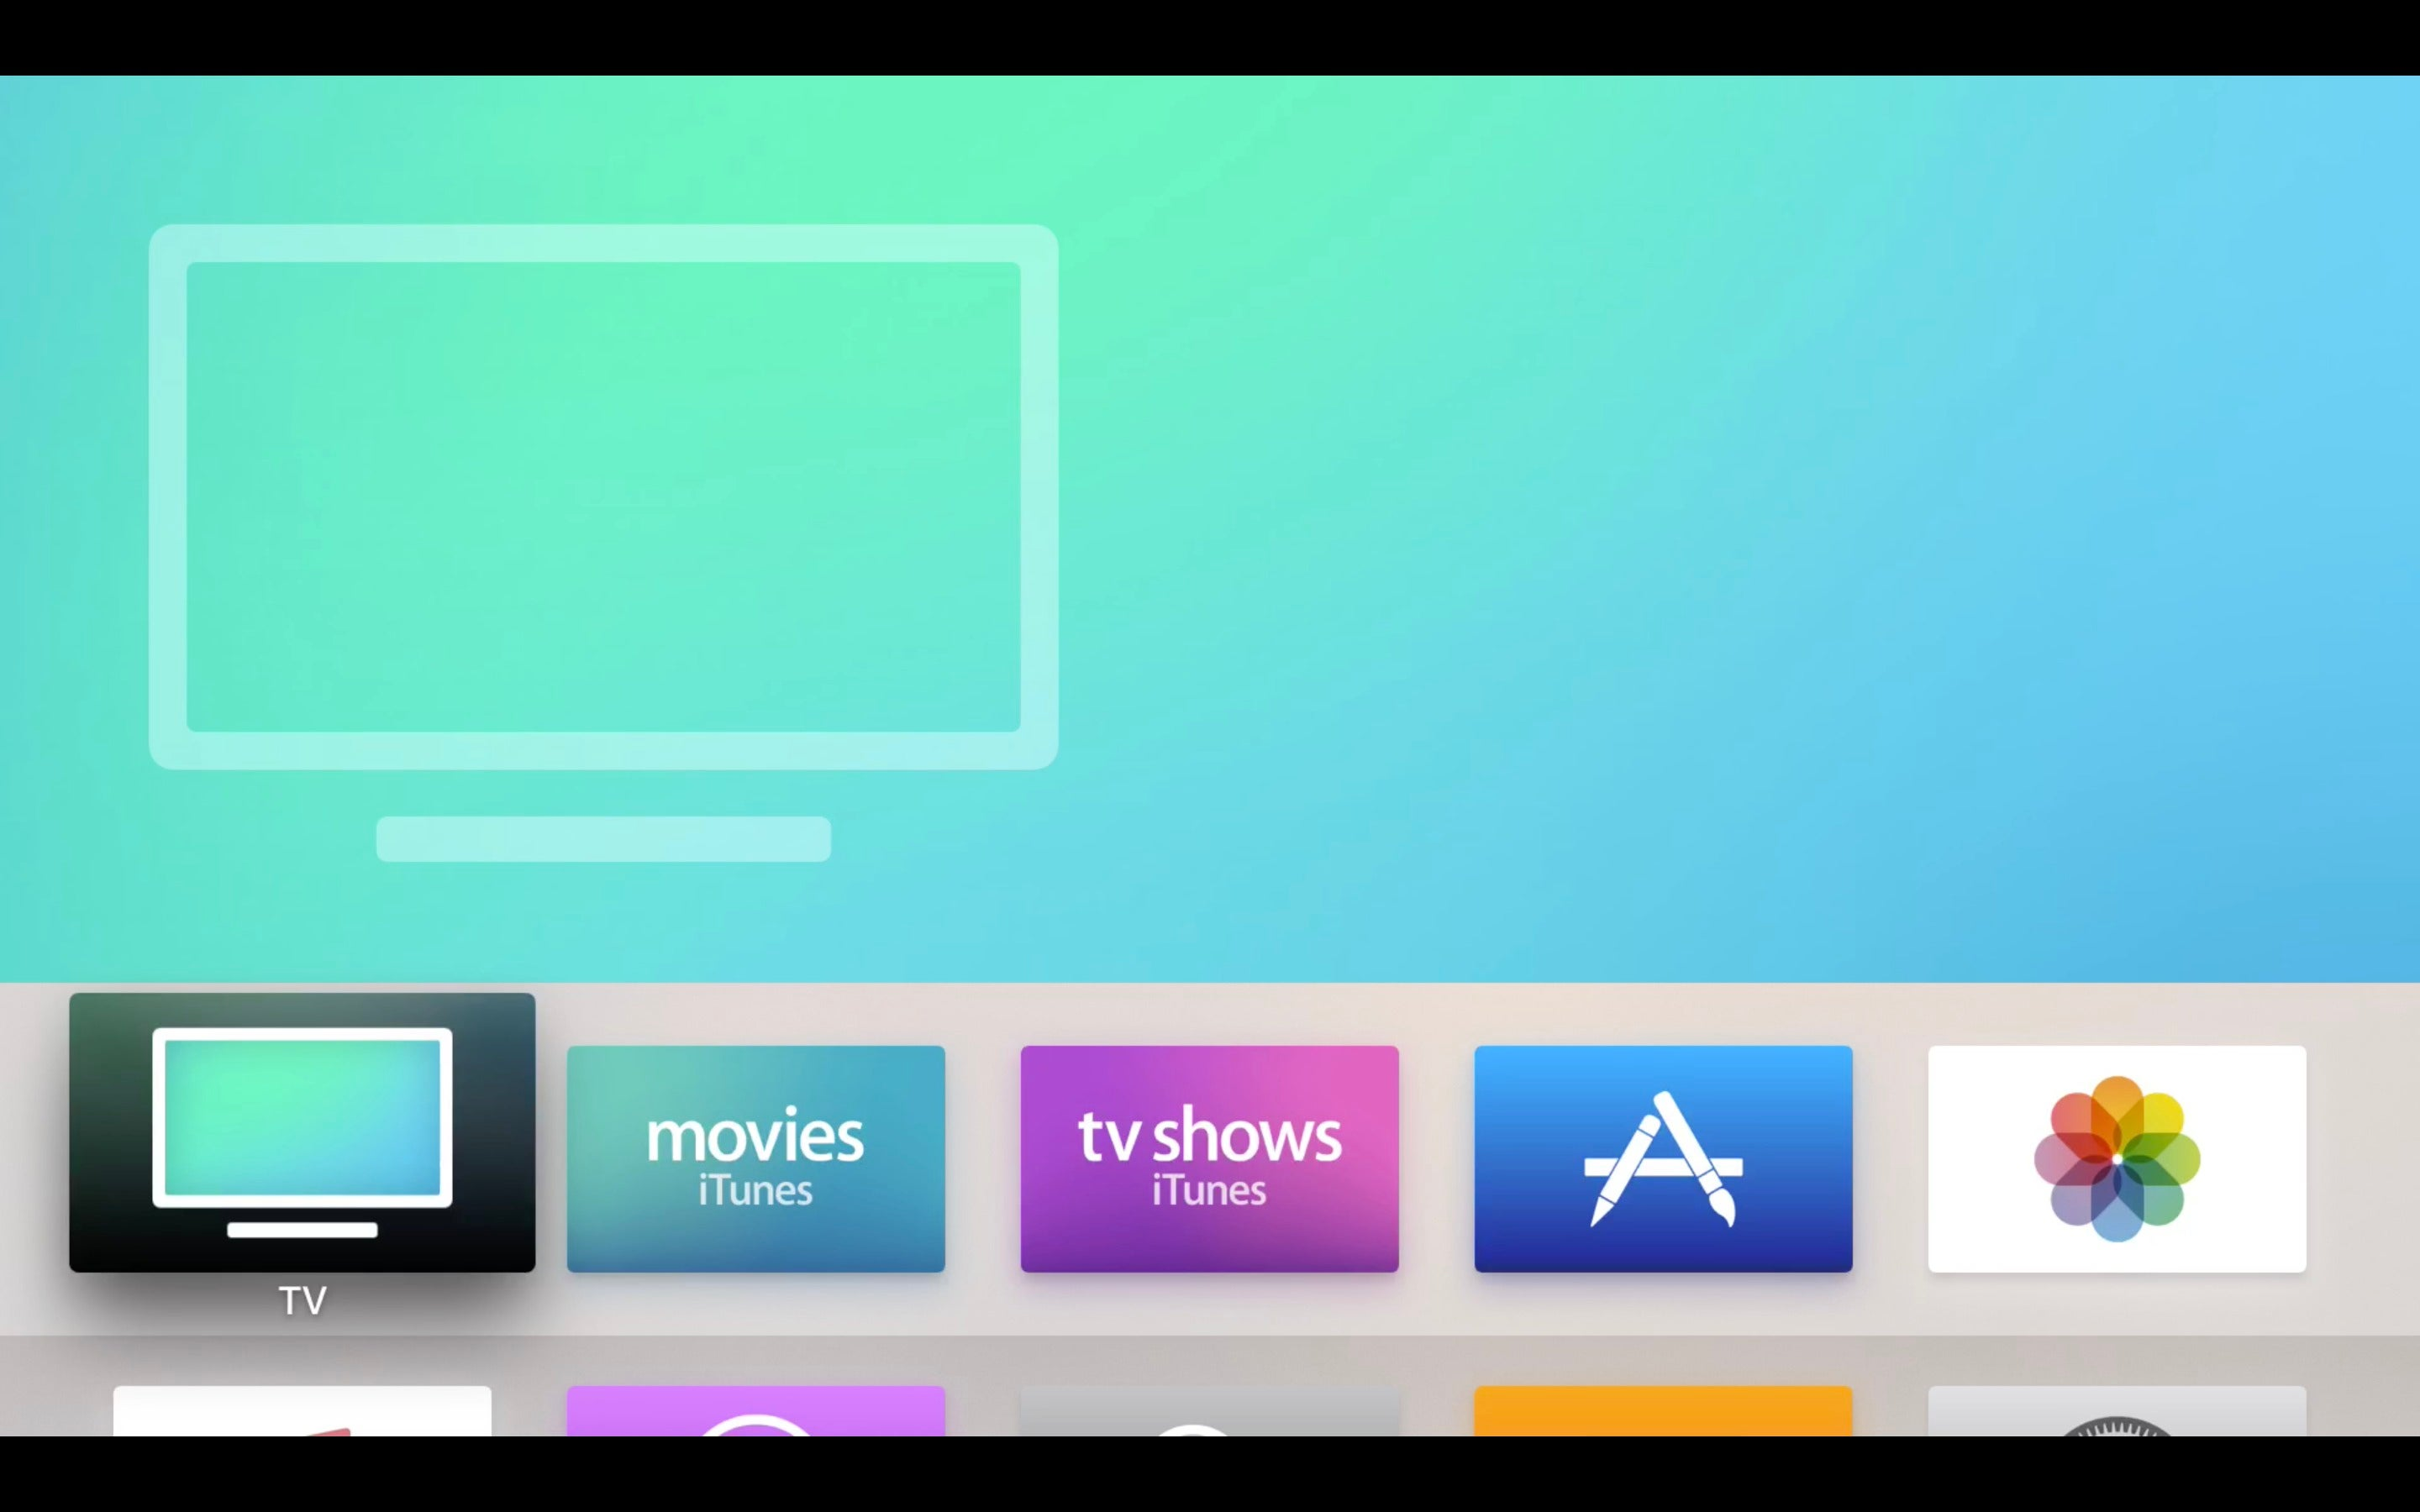 how to add apps to apple tv home screen